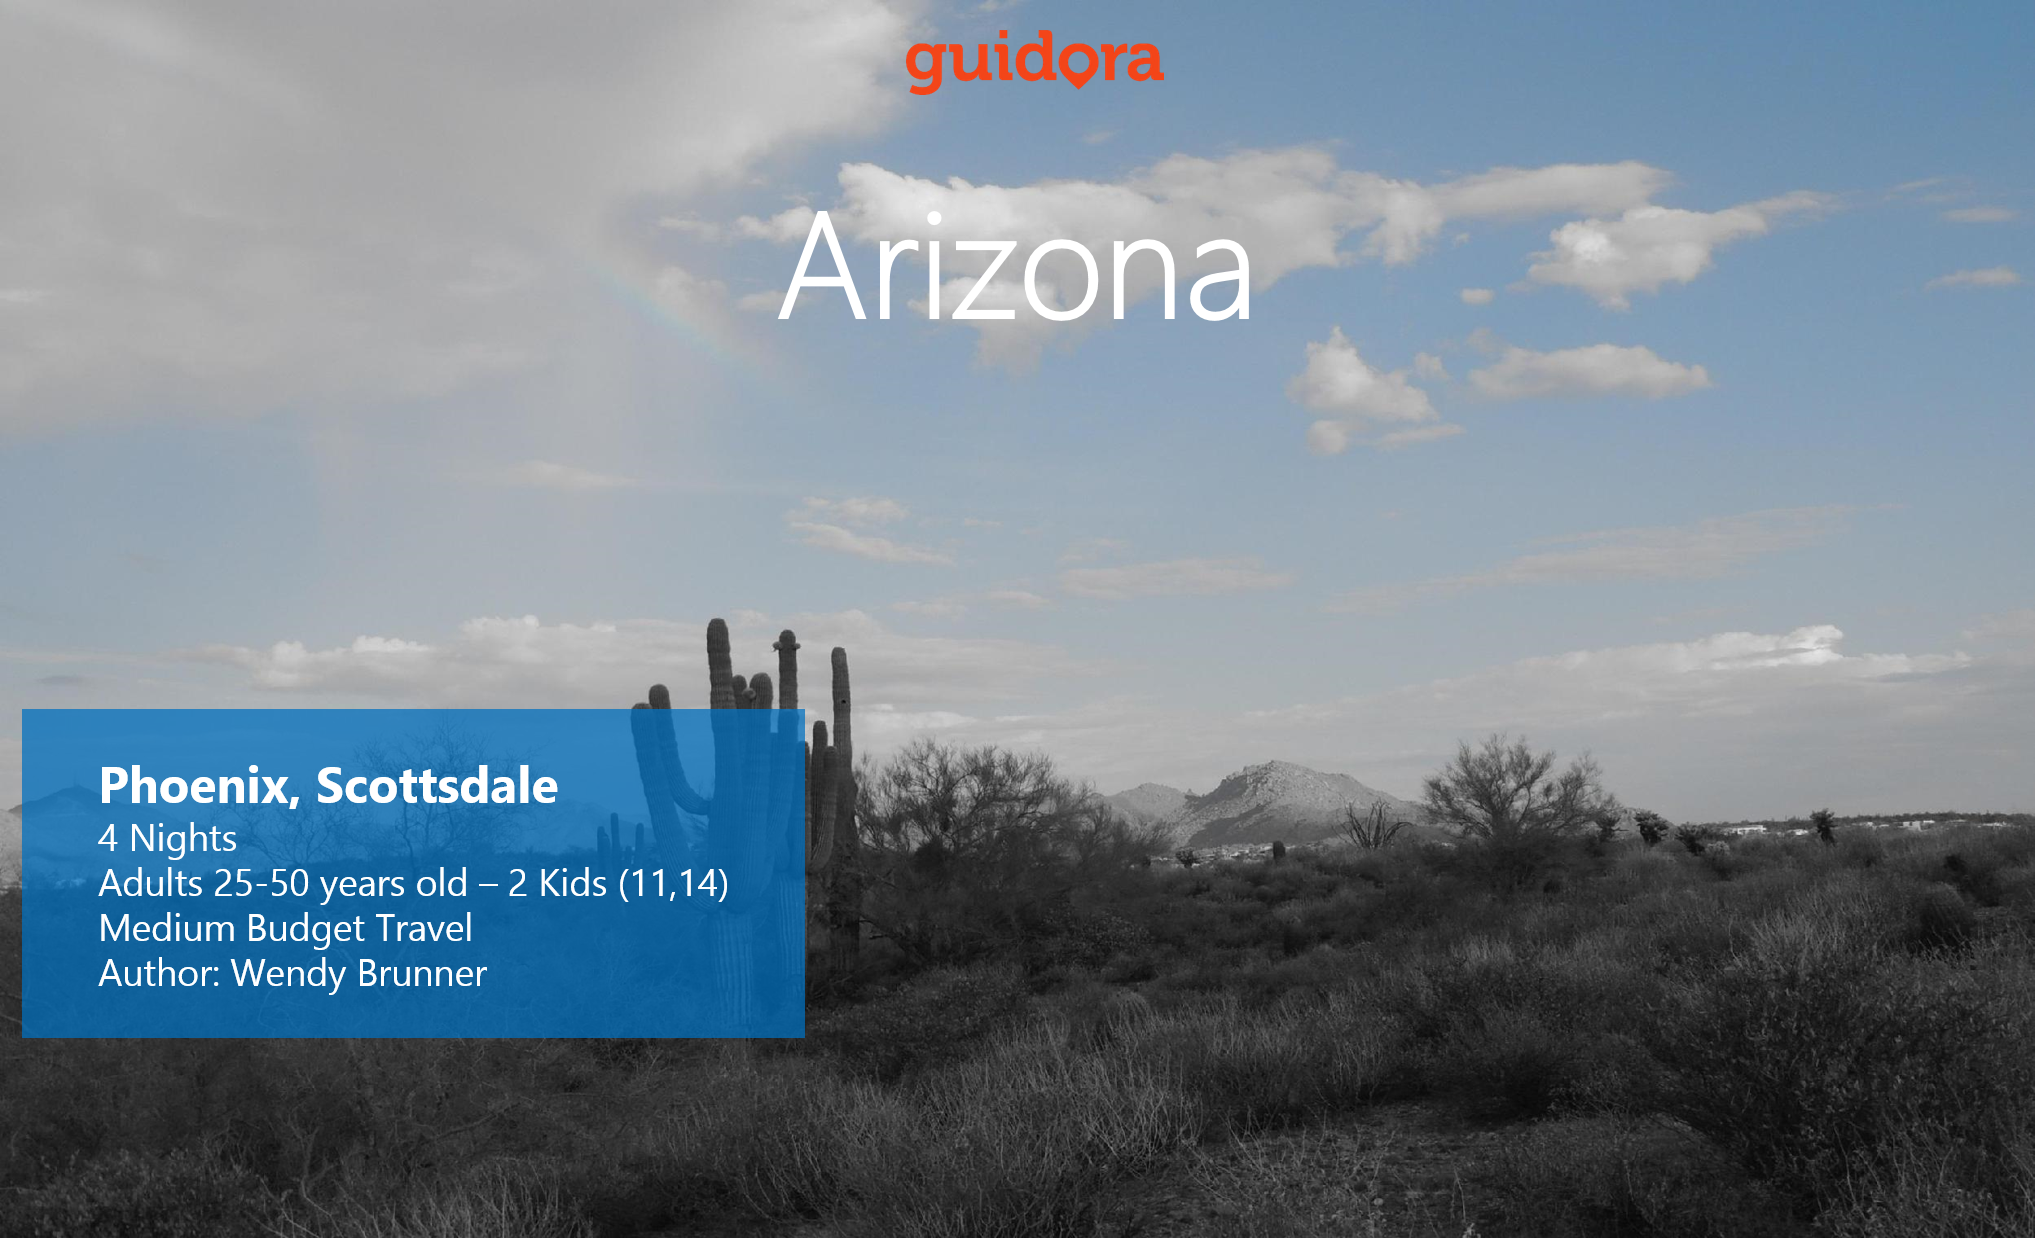 What to do in Phoenix, Scottsdale in Arizona: 4 Nights Travel Itinerary [PDF]